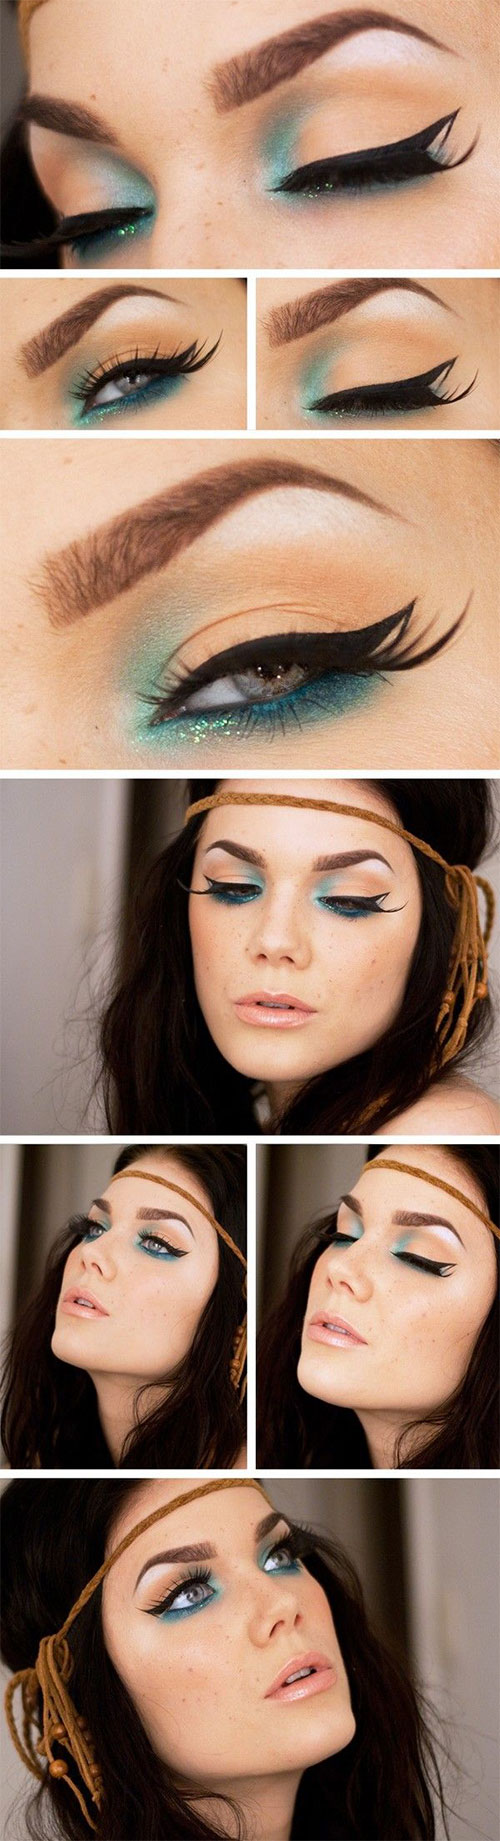 12-Easy-Summer-Eye-Make-Up-Tutorials-For-Beginners-Learners-2015-1